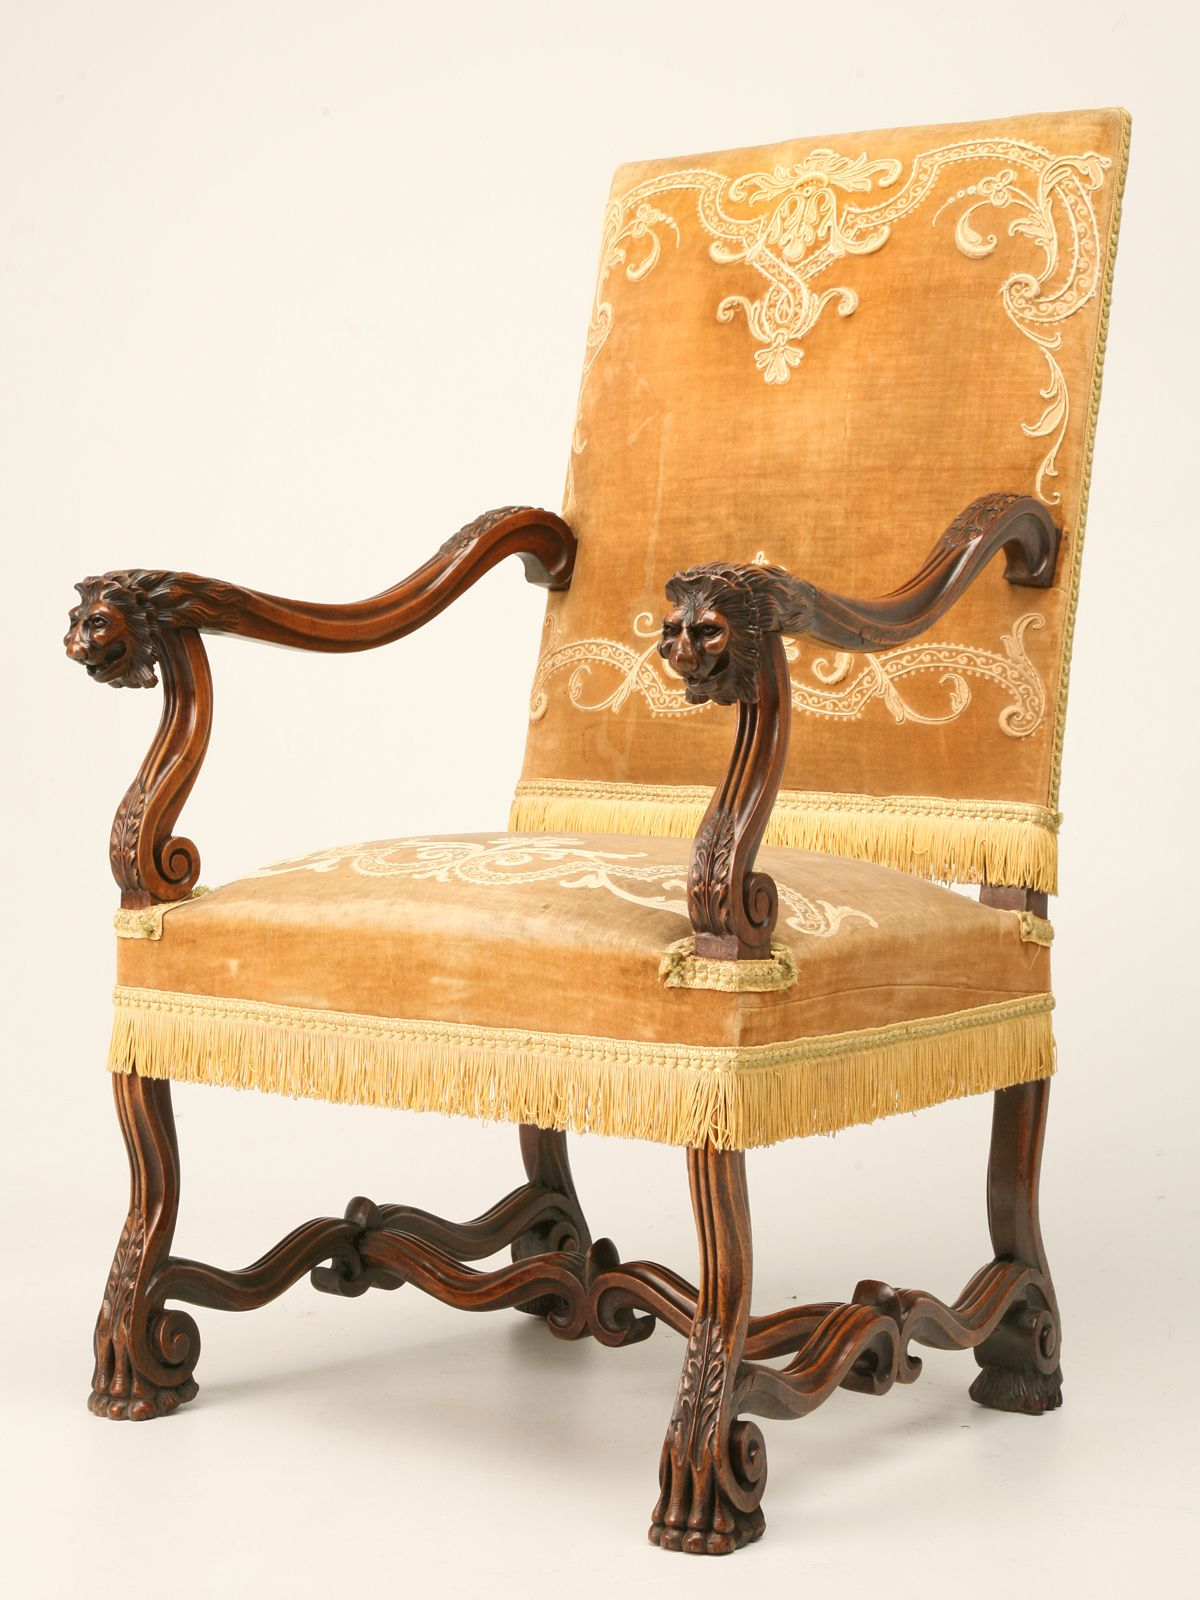 Antique walnut throne chair in the Louis XIII style. Beautifully hand  carved with lion head detail, fleur-de-lys inspired volute H-stretcher and  paw feet. - Antique Walnut Throne Chair In The Louis XIII Style. Beautifully